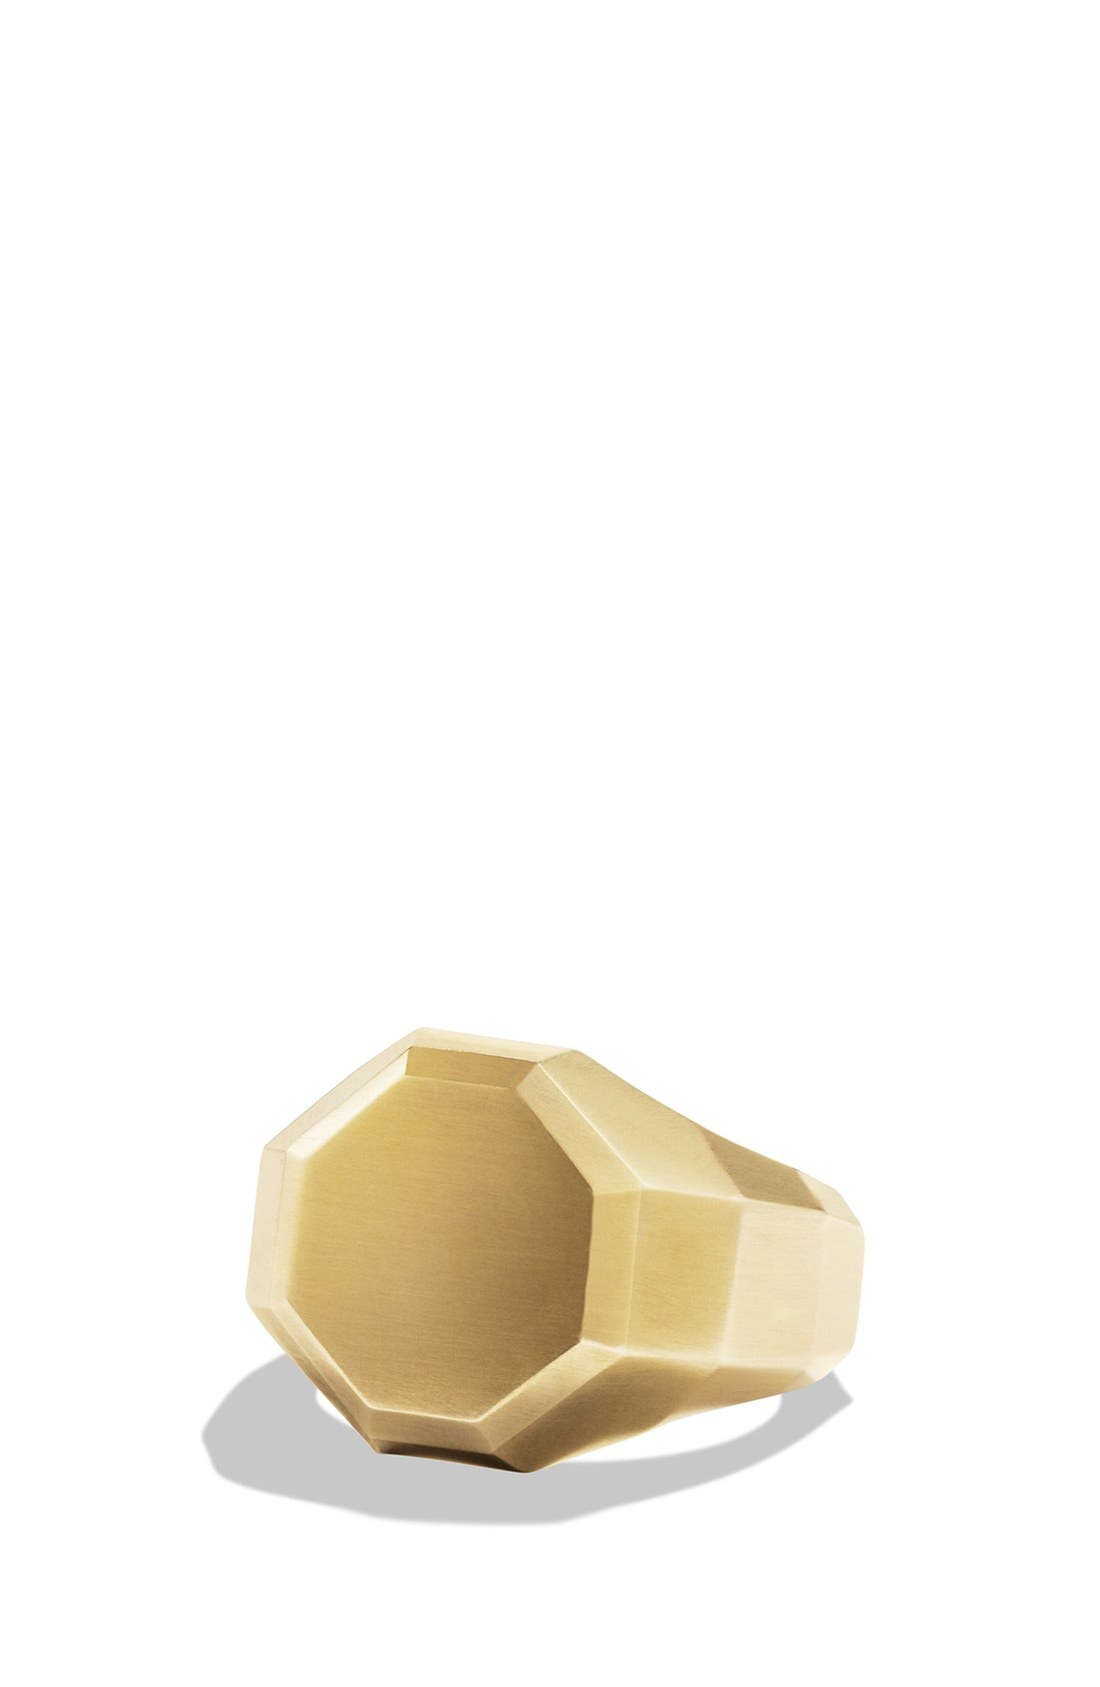 Alternate Image 1 Selected - David Yurman 'Faceted' Signet Ring with 18k Gold